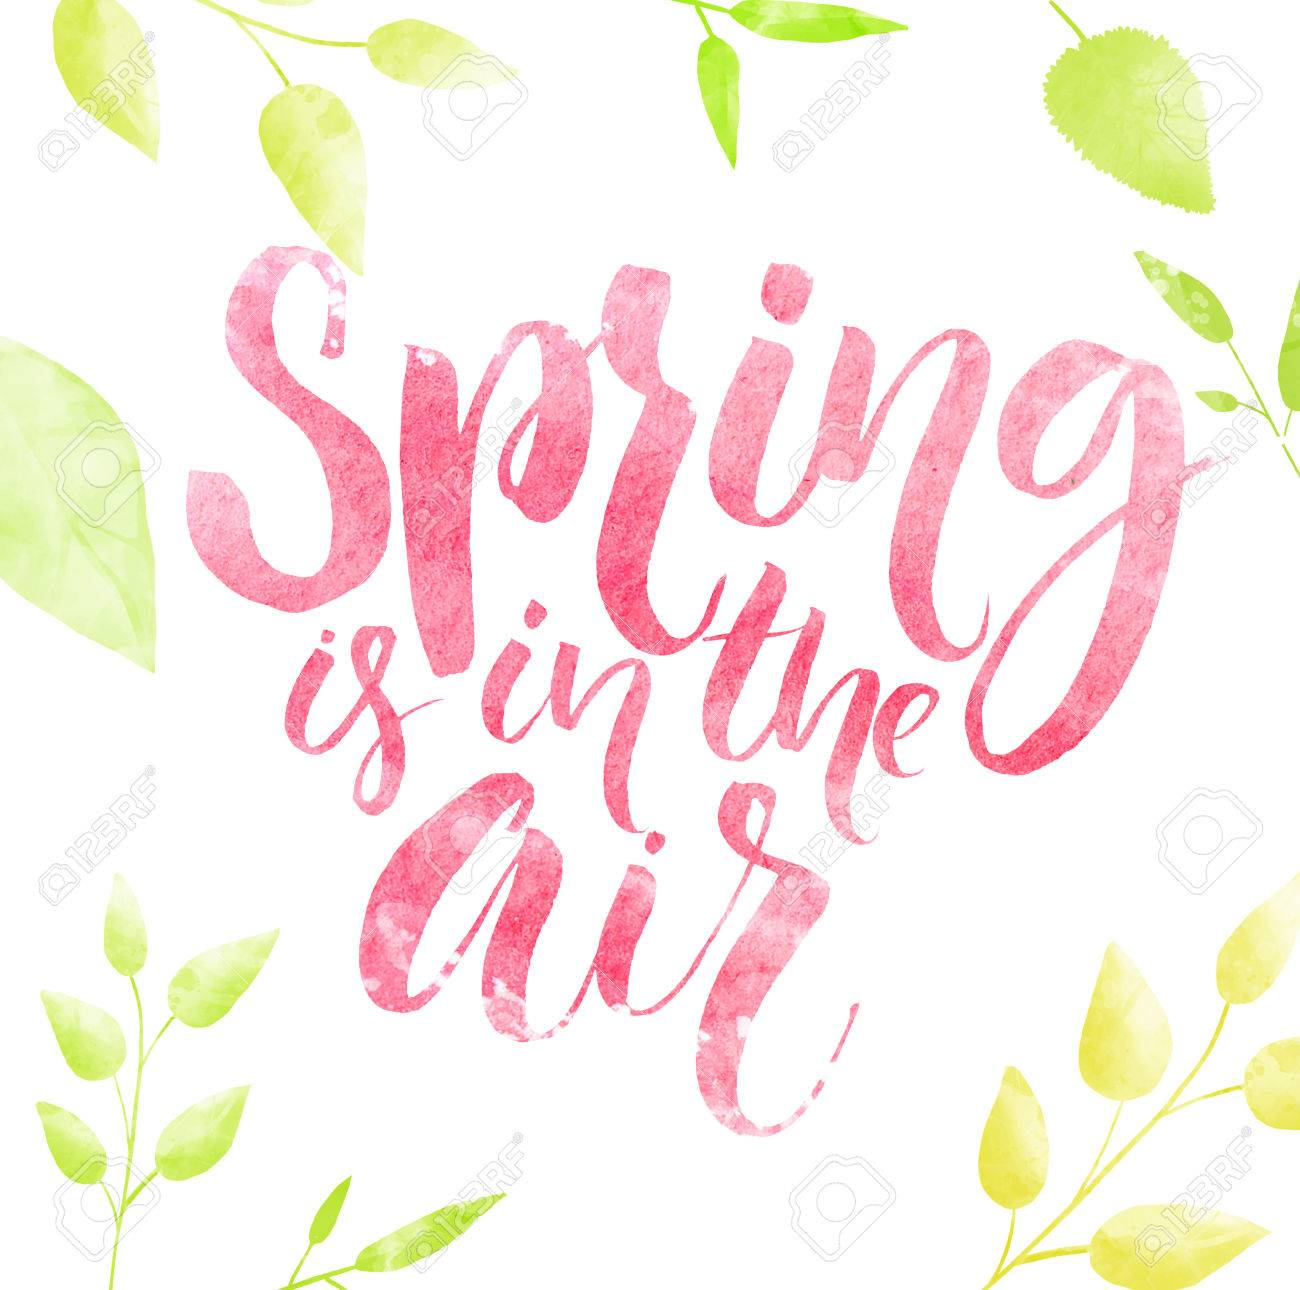 Spring is in the air watercolor lettering in green leaves frame. - 53973198